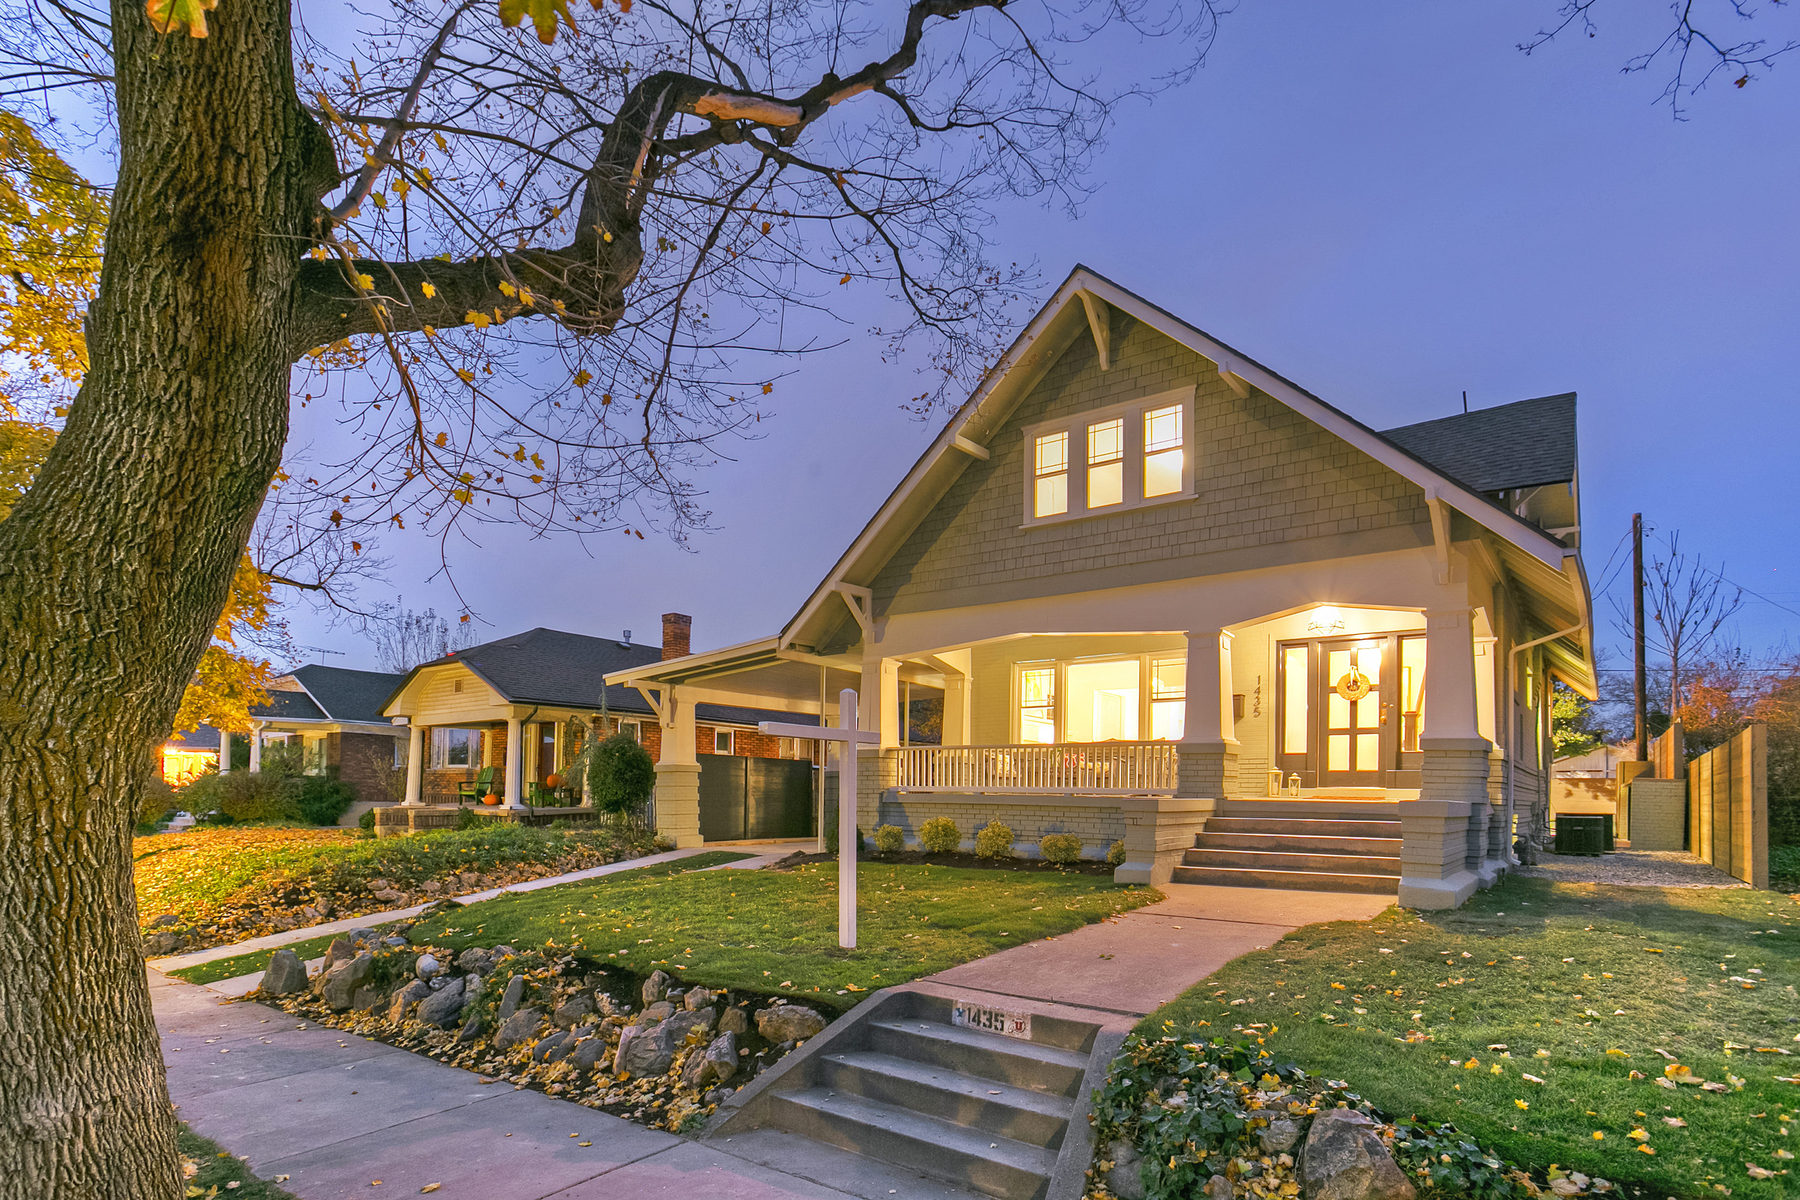 独户住宅 为 销售 在 Meticulously Updated Bungalow 1435 E Logan Ave Salt Lake City, 犹他州 84105 美国